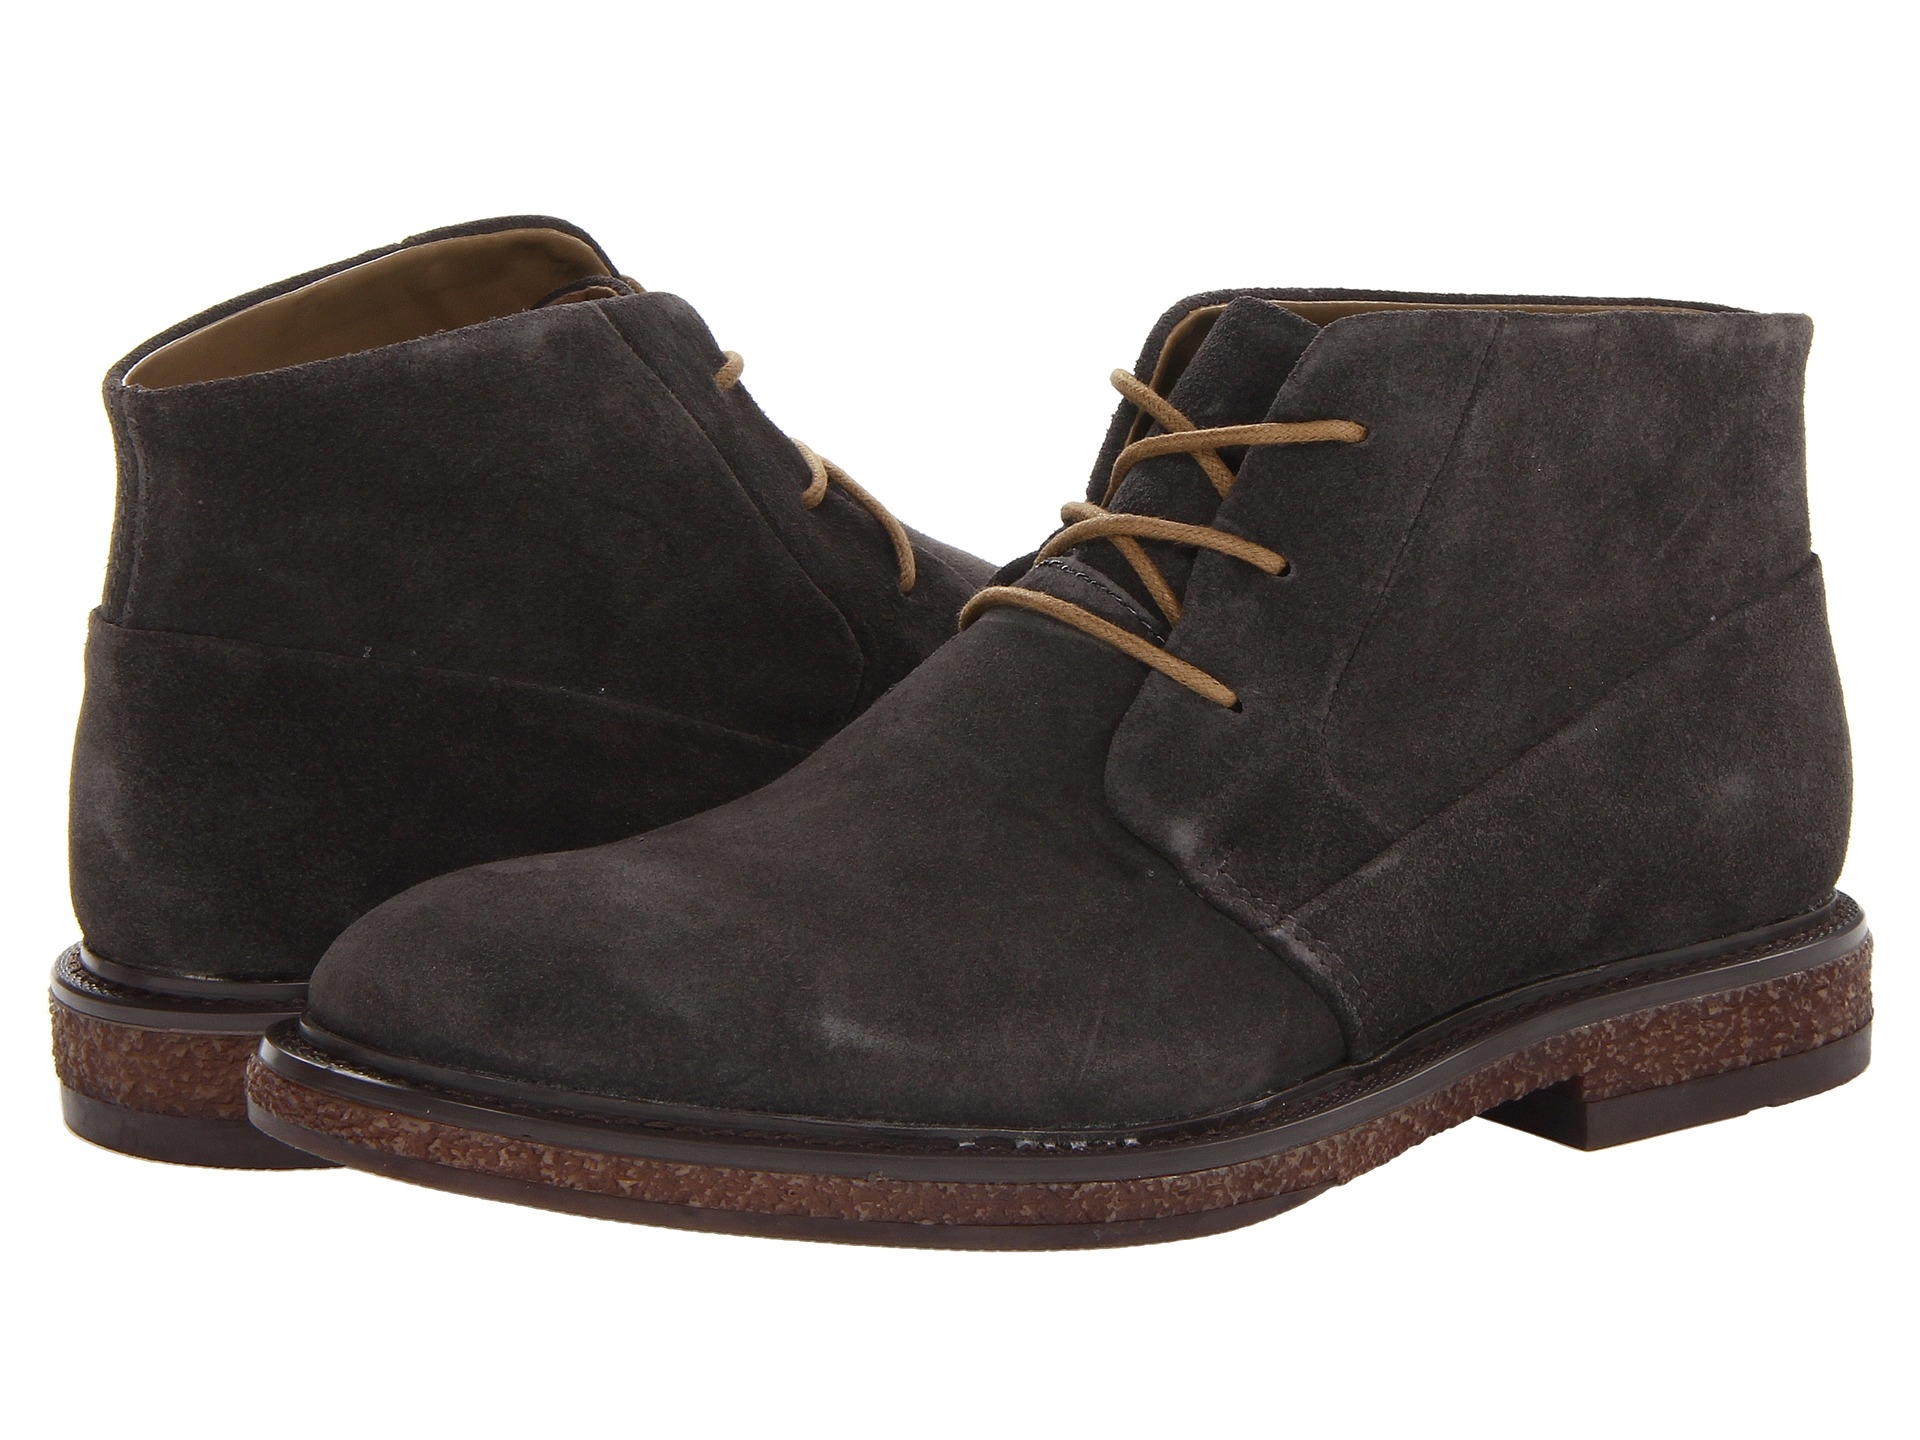 fashionable mens winter boots 2014 mount mercy